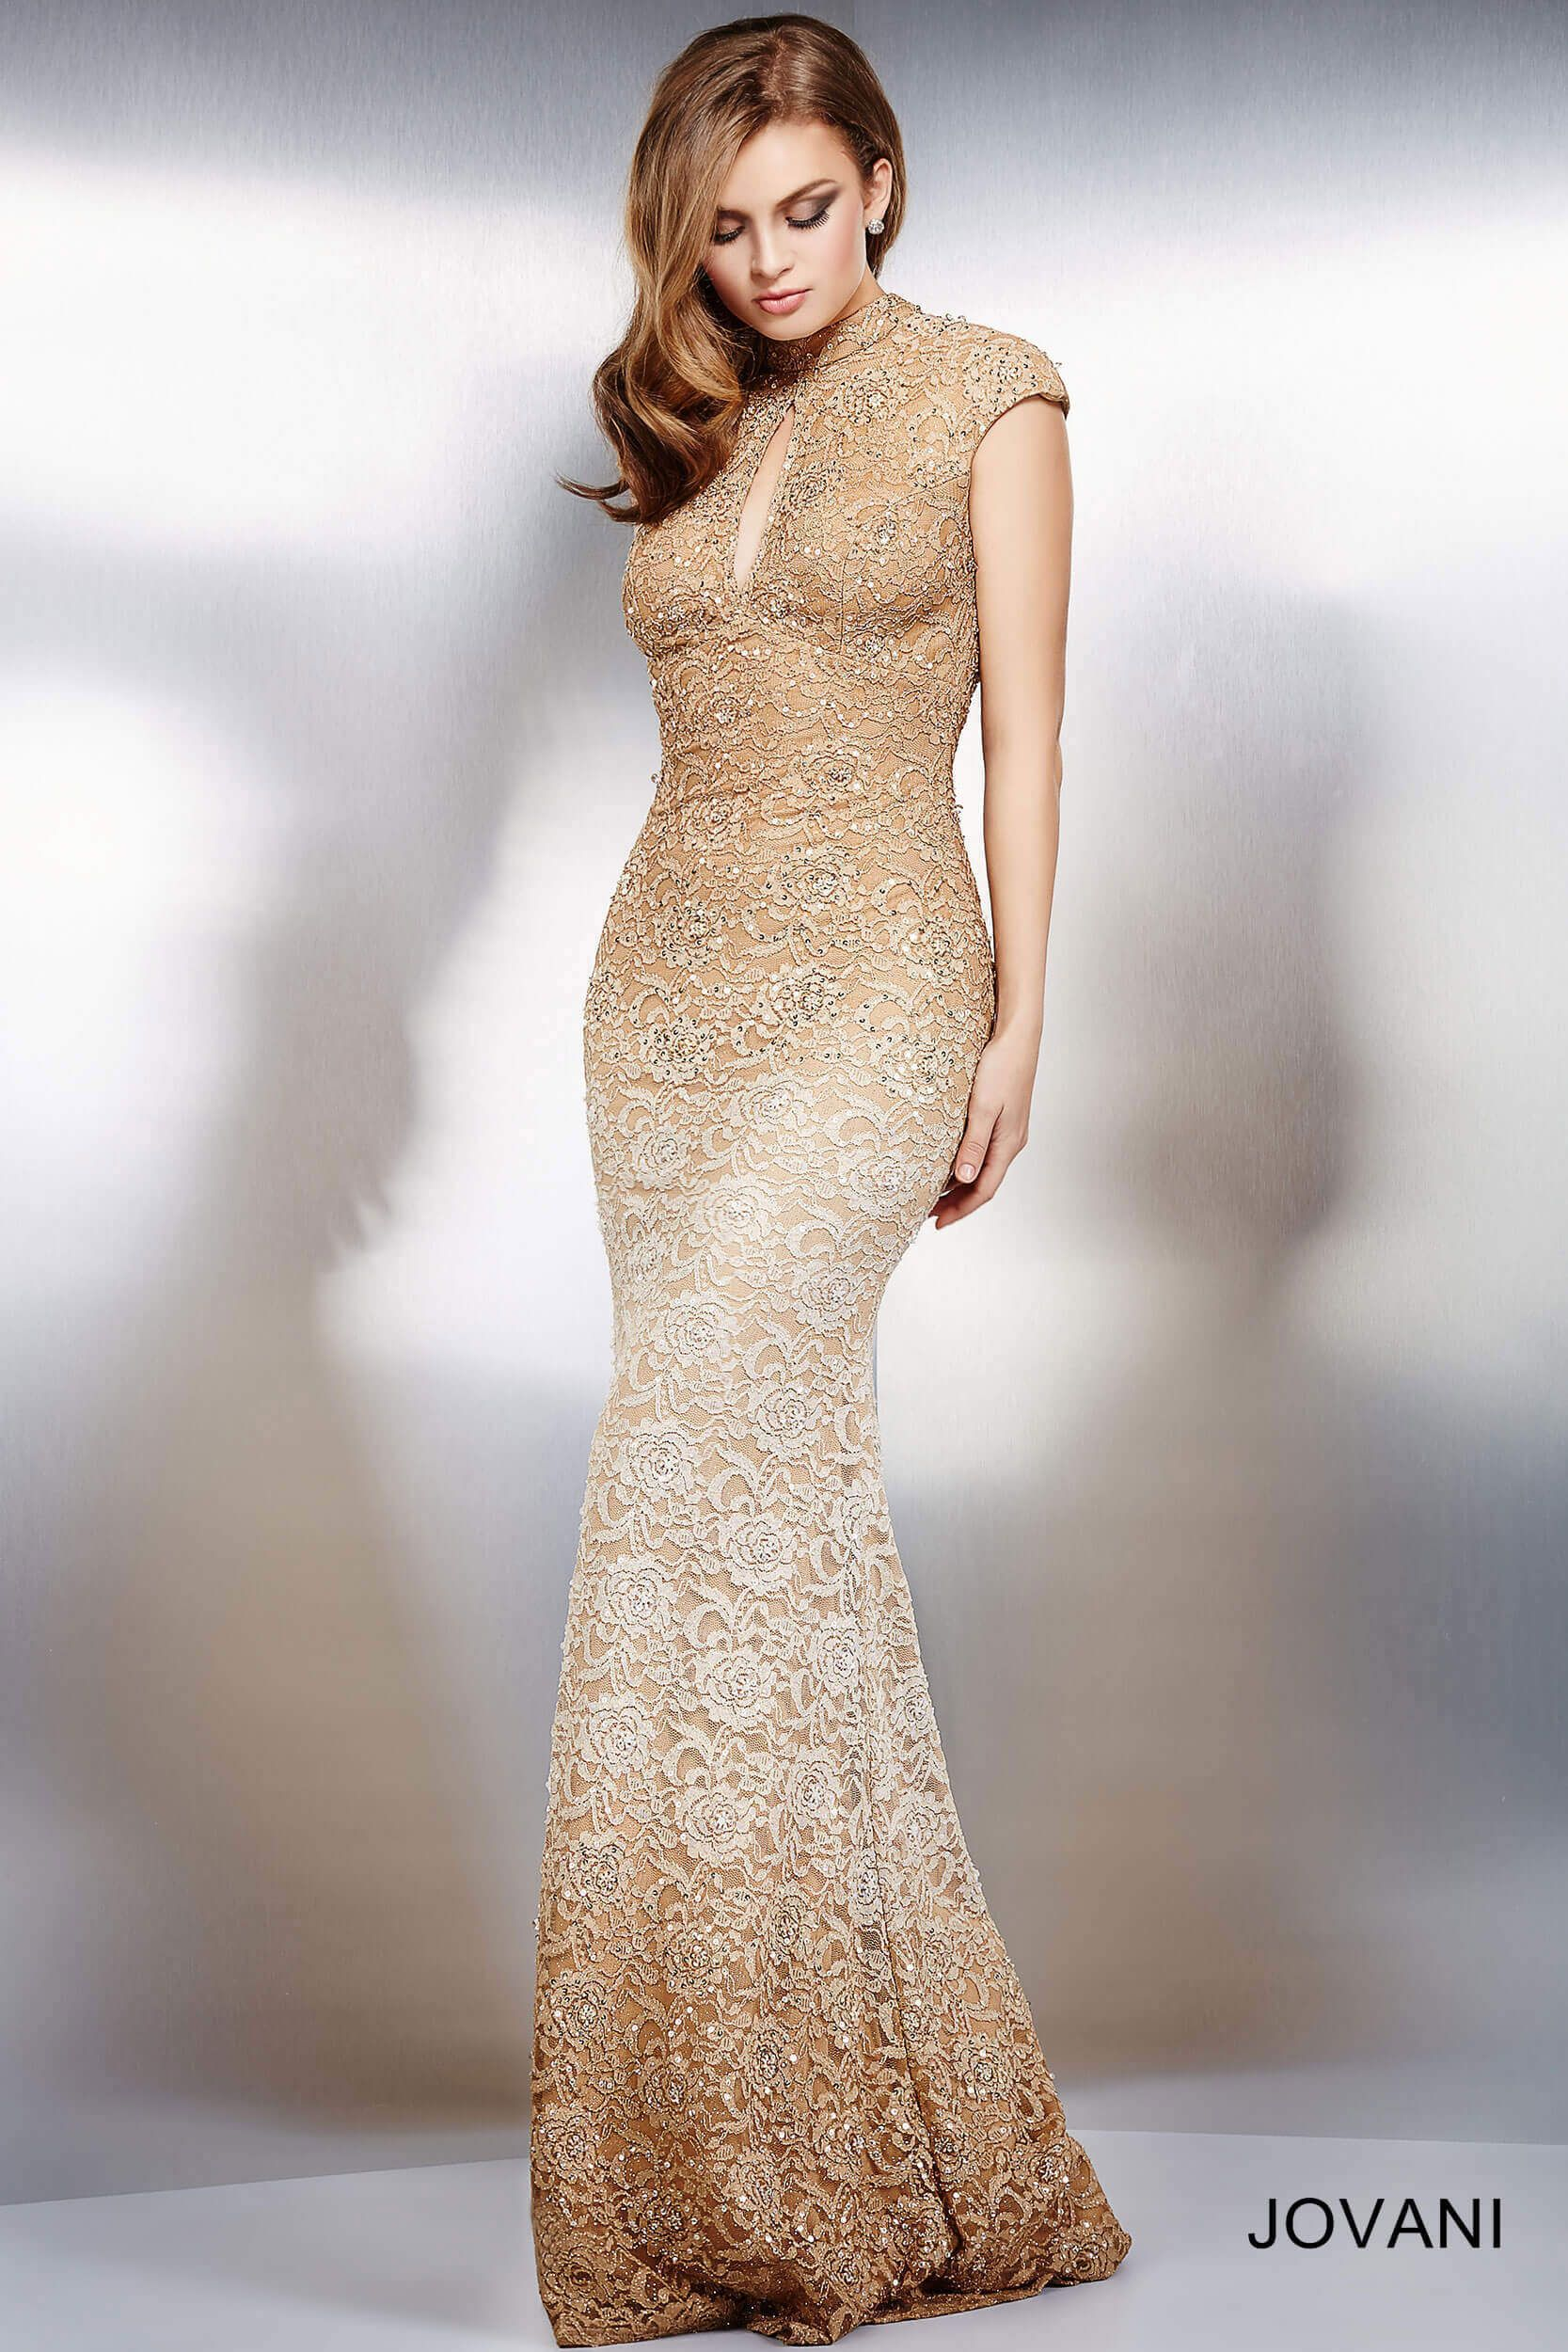 Stunning lace cap sleeve dress features a keyhole opening and gold